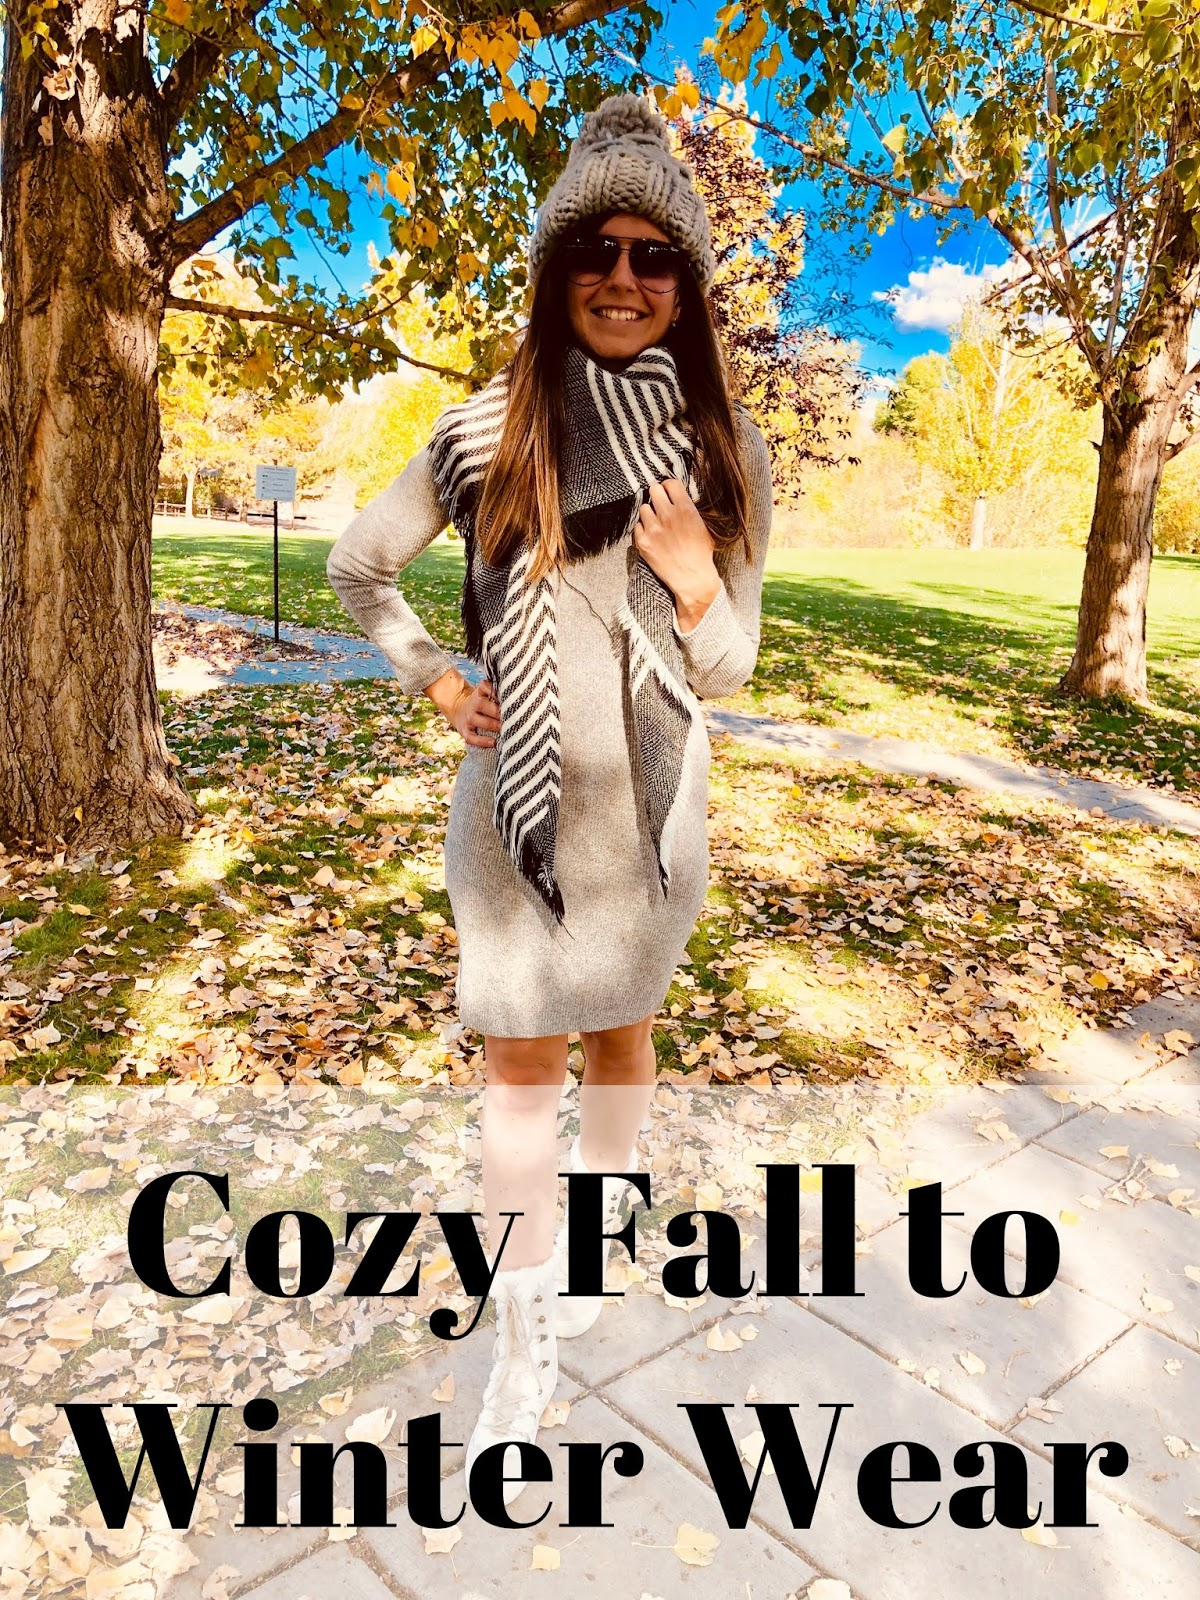 beige boots, booties for fall, Boots, boots for fall and winter, cozy fall to winter wear, fall outfit, fall to winter outfit, fall wear, furry booties, fuzzy boots, amiclubwear,